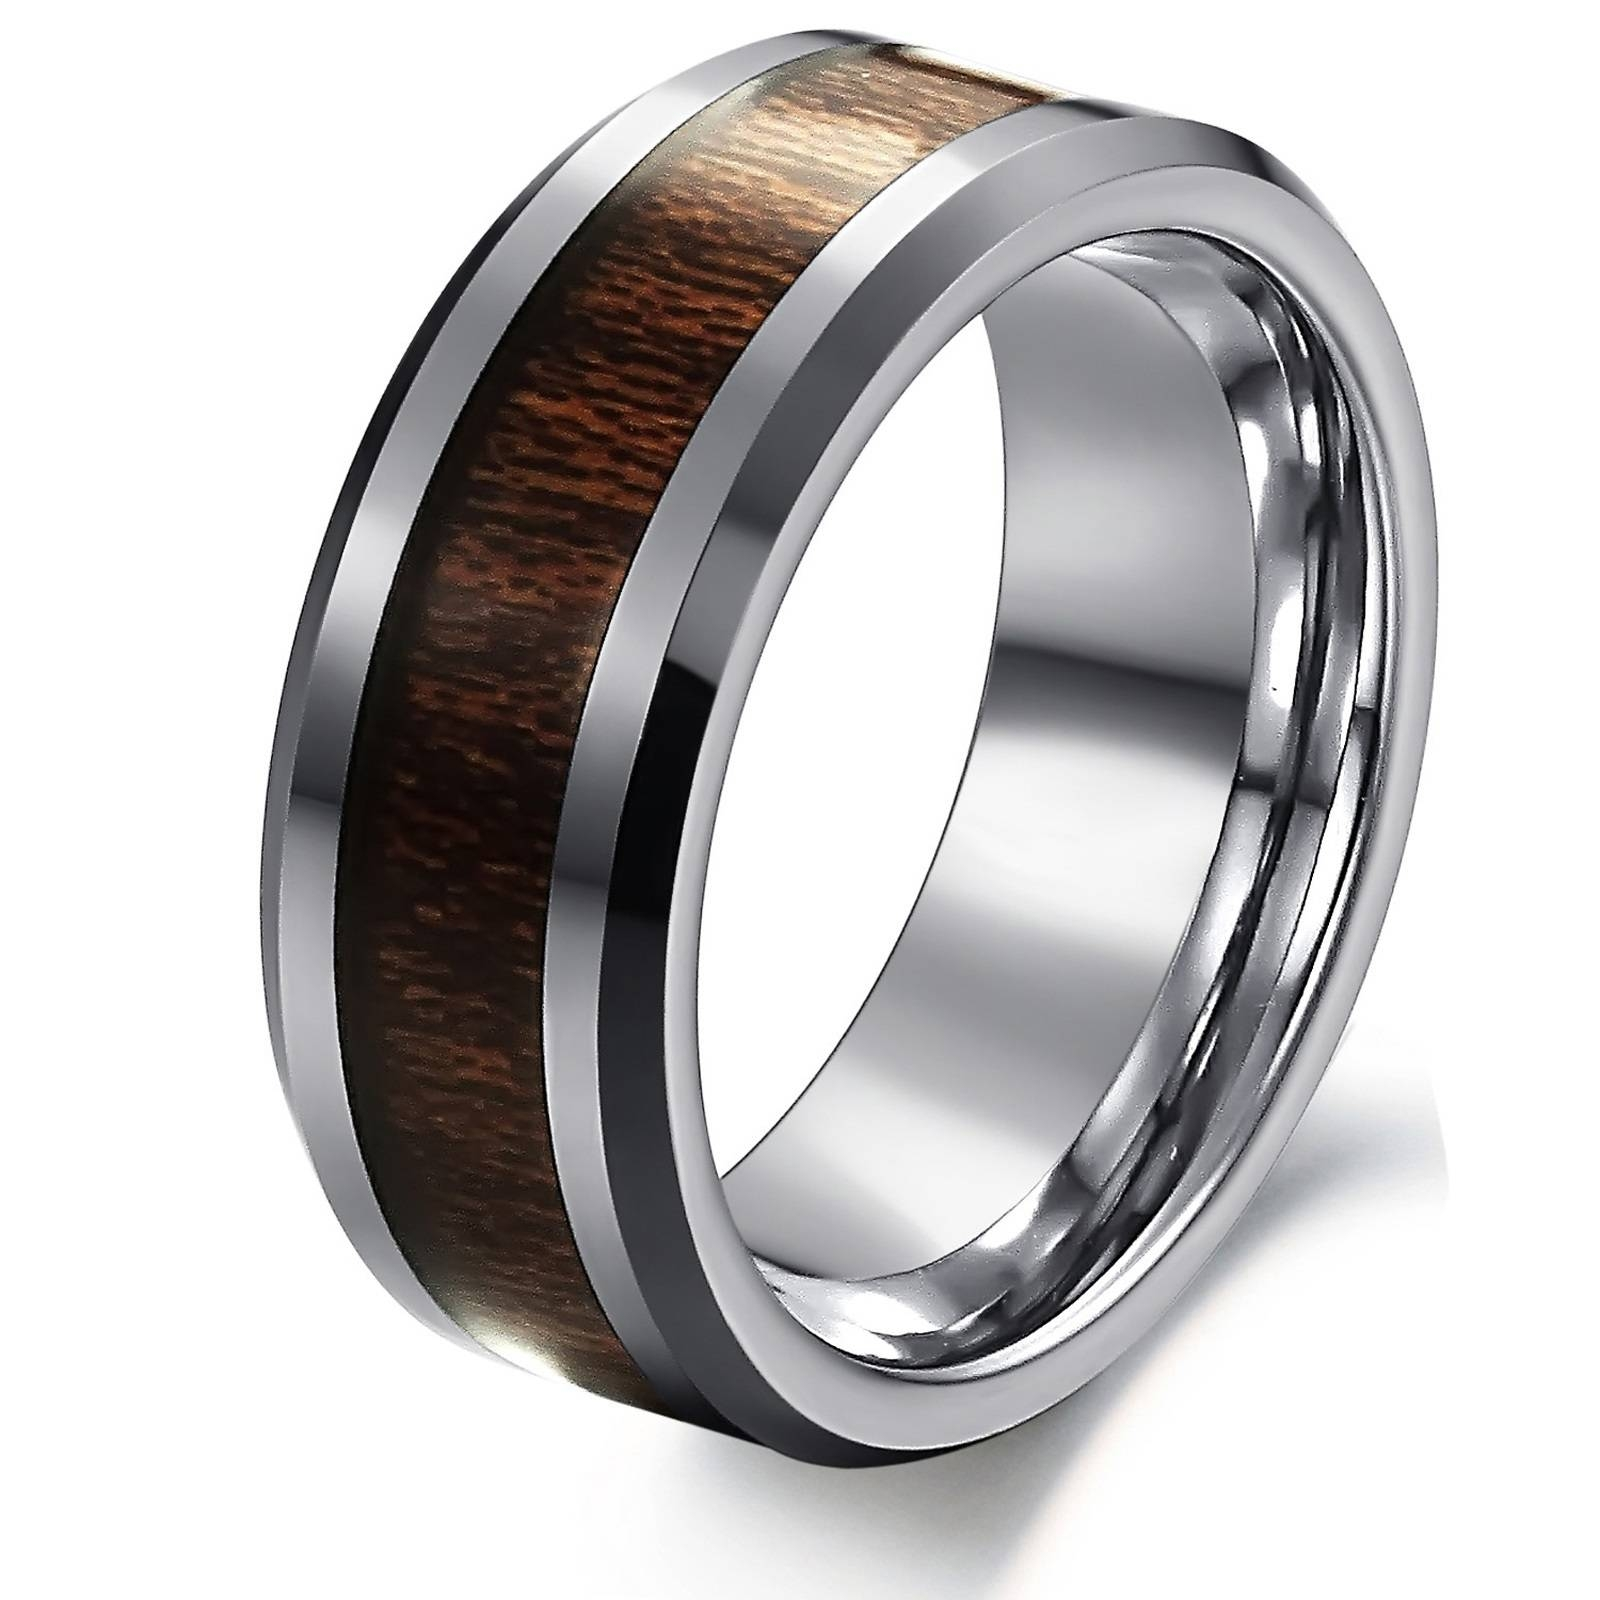 Men's Personalized Pure Tungsten Steel Wedding Band Ring 5936 At Regarding Steel Wedding Bands (View 8 of 15)